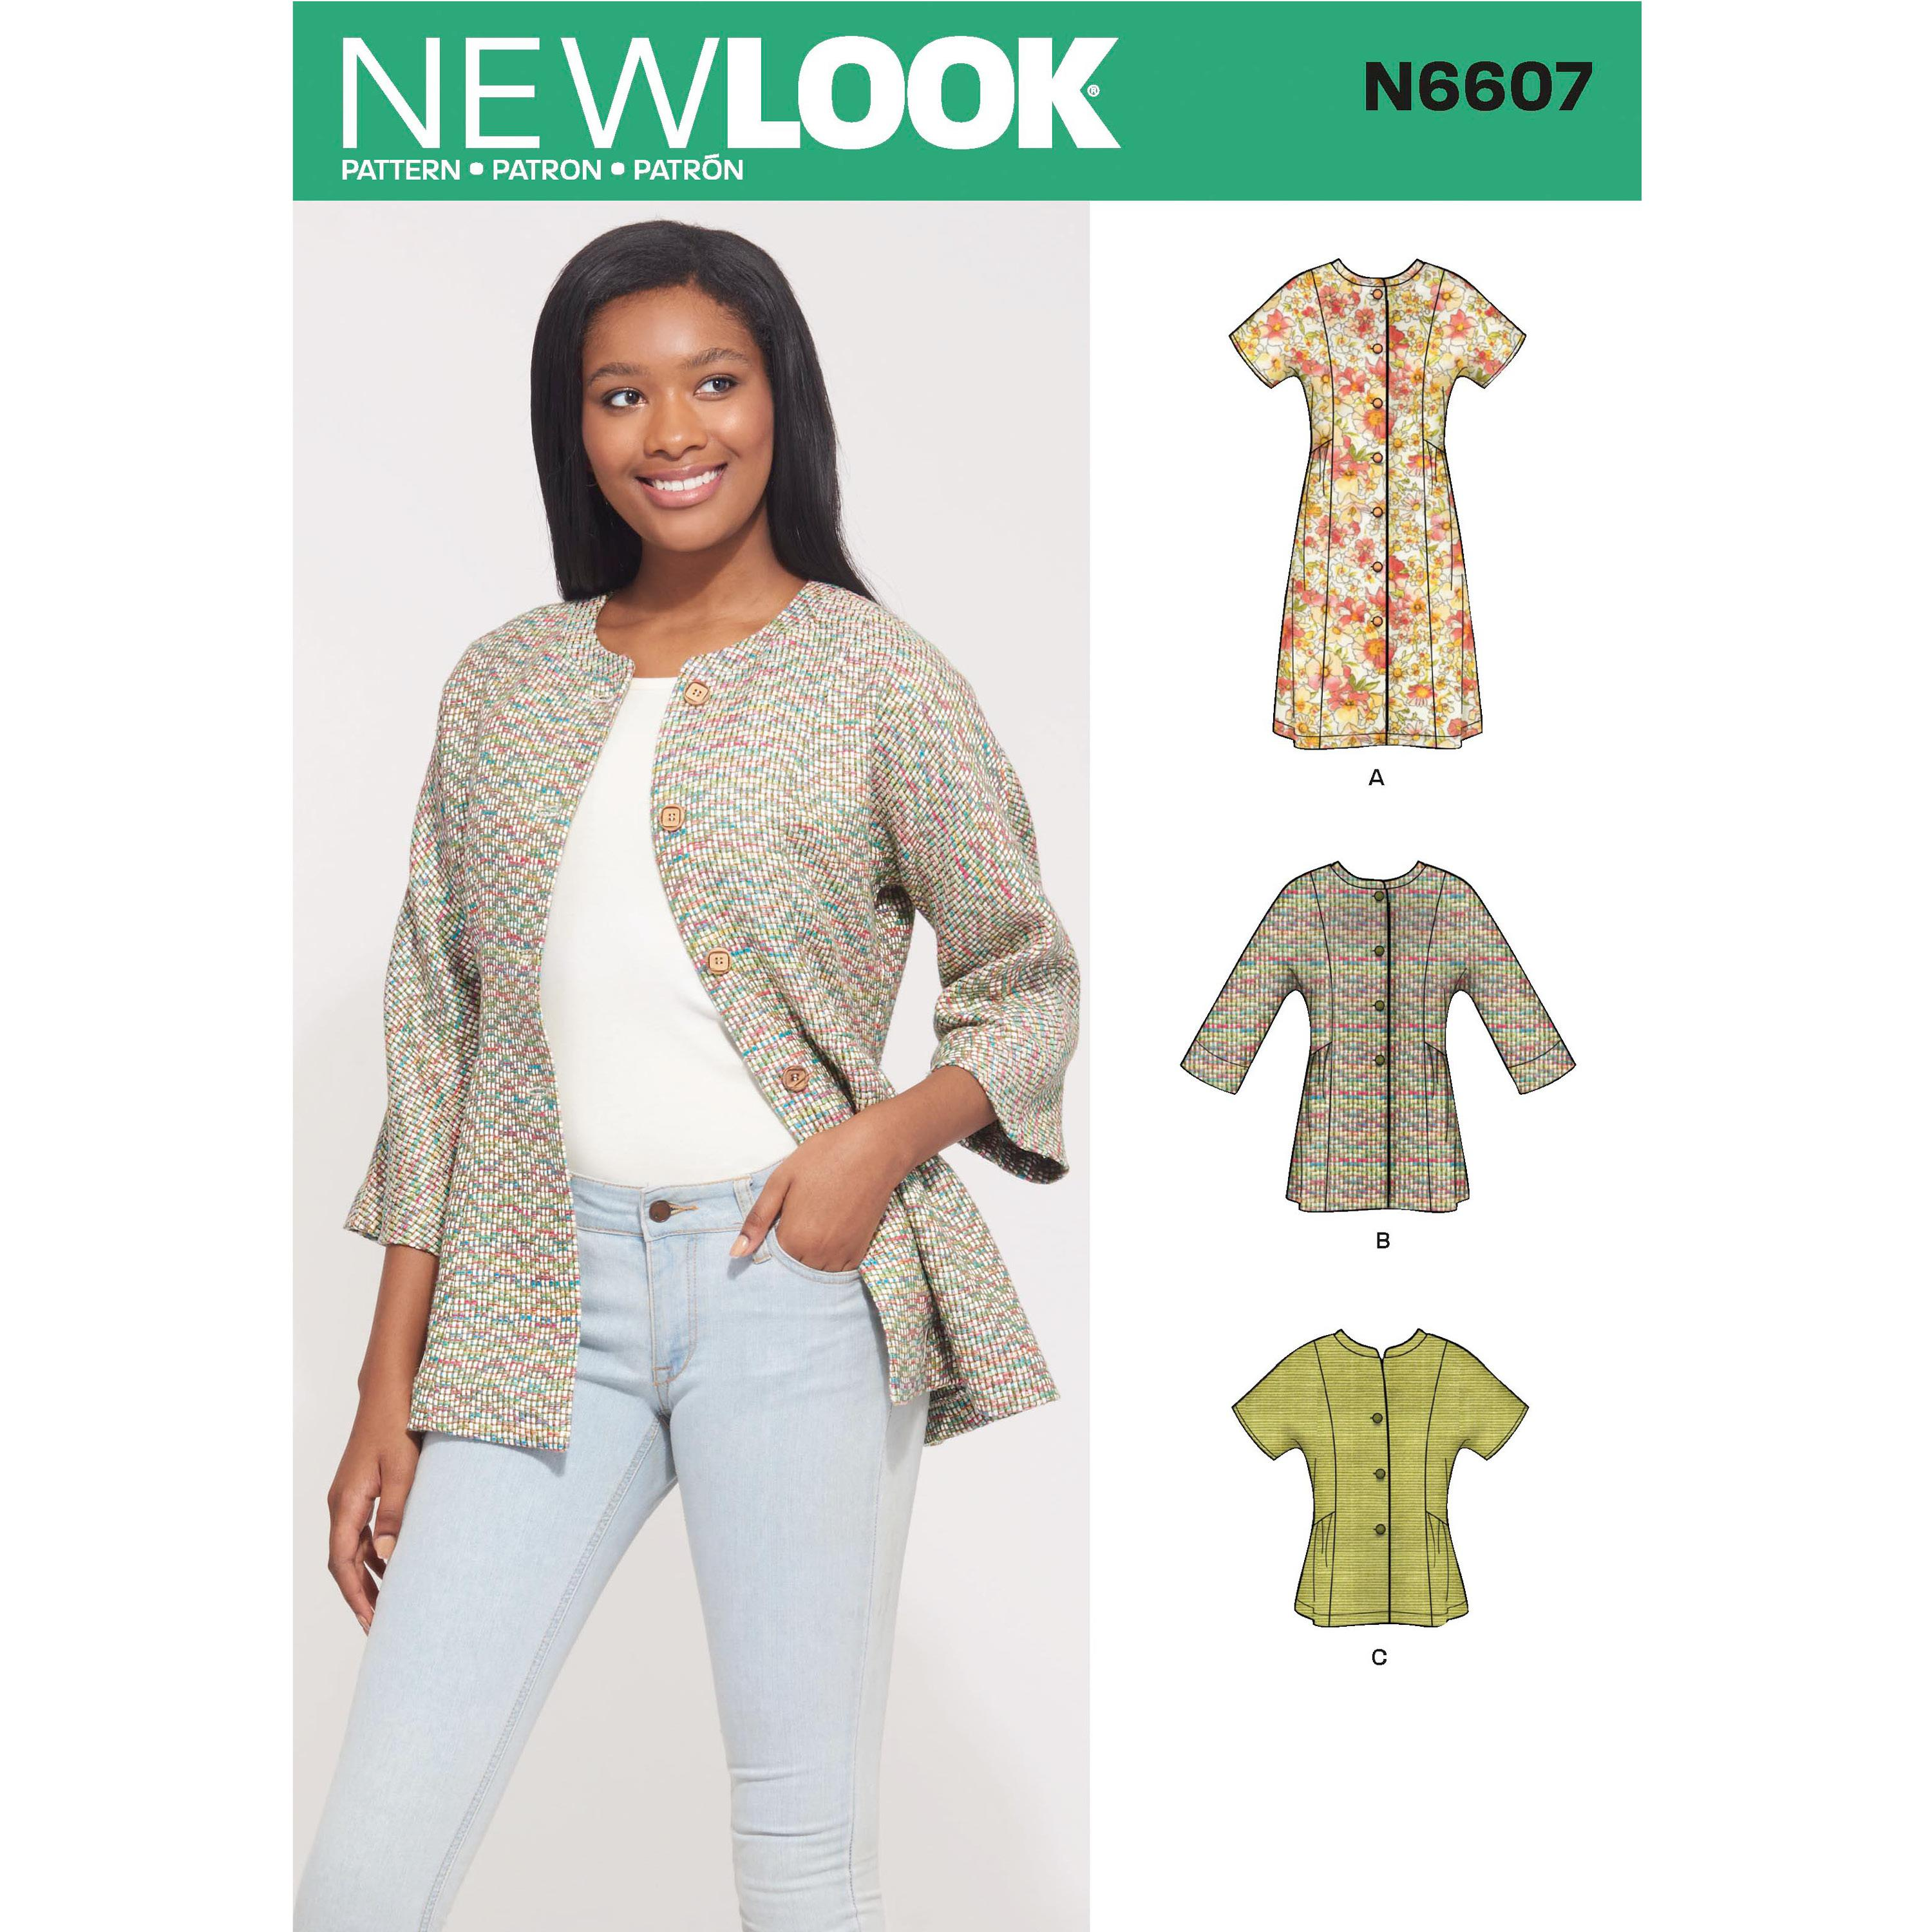 NewLook Sewing Pattern N6607 Misses' Mini Dress , Tunic and Top